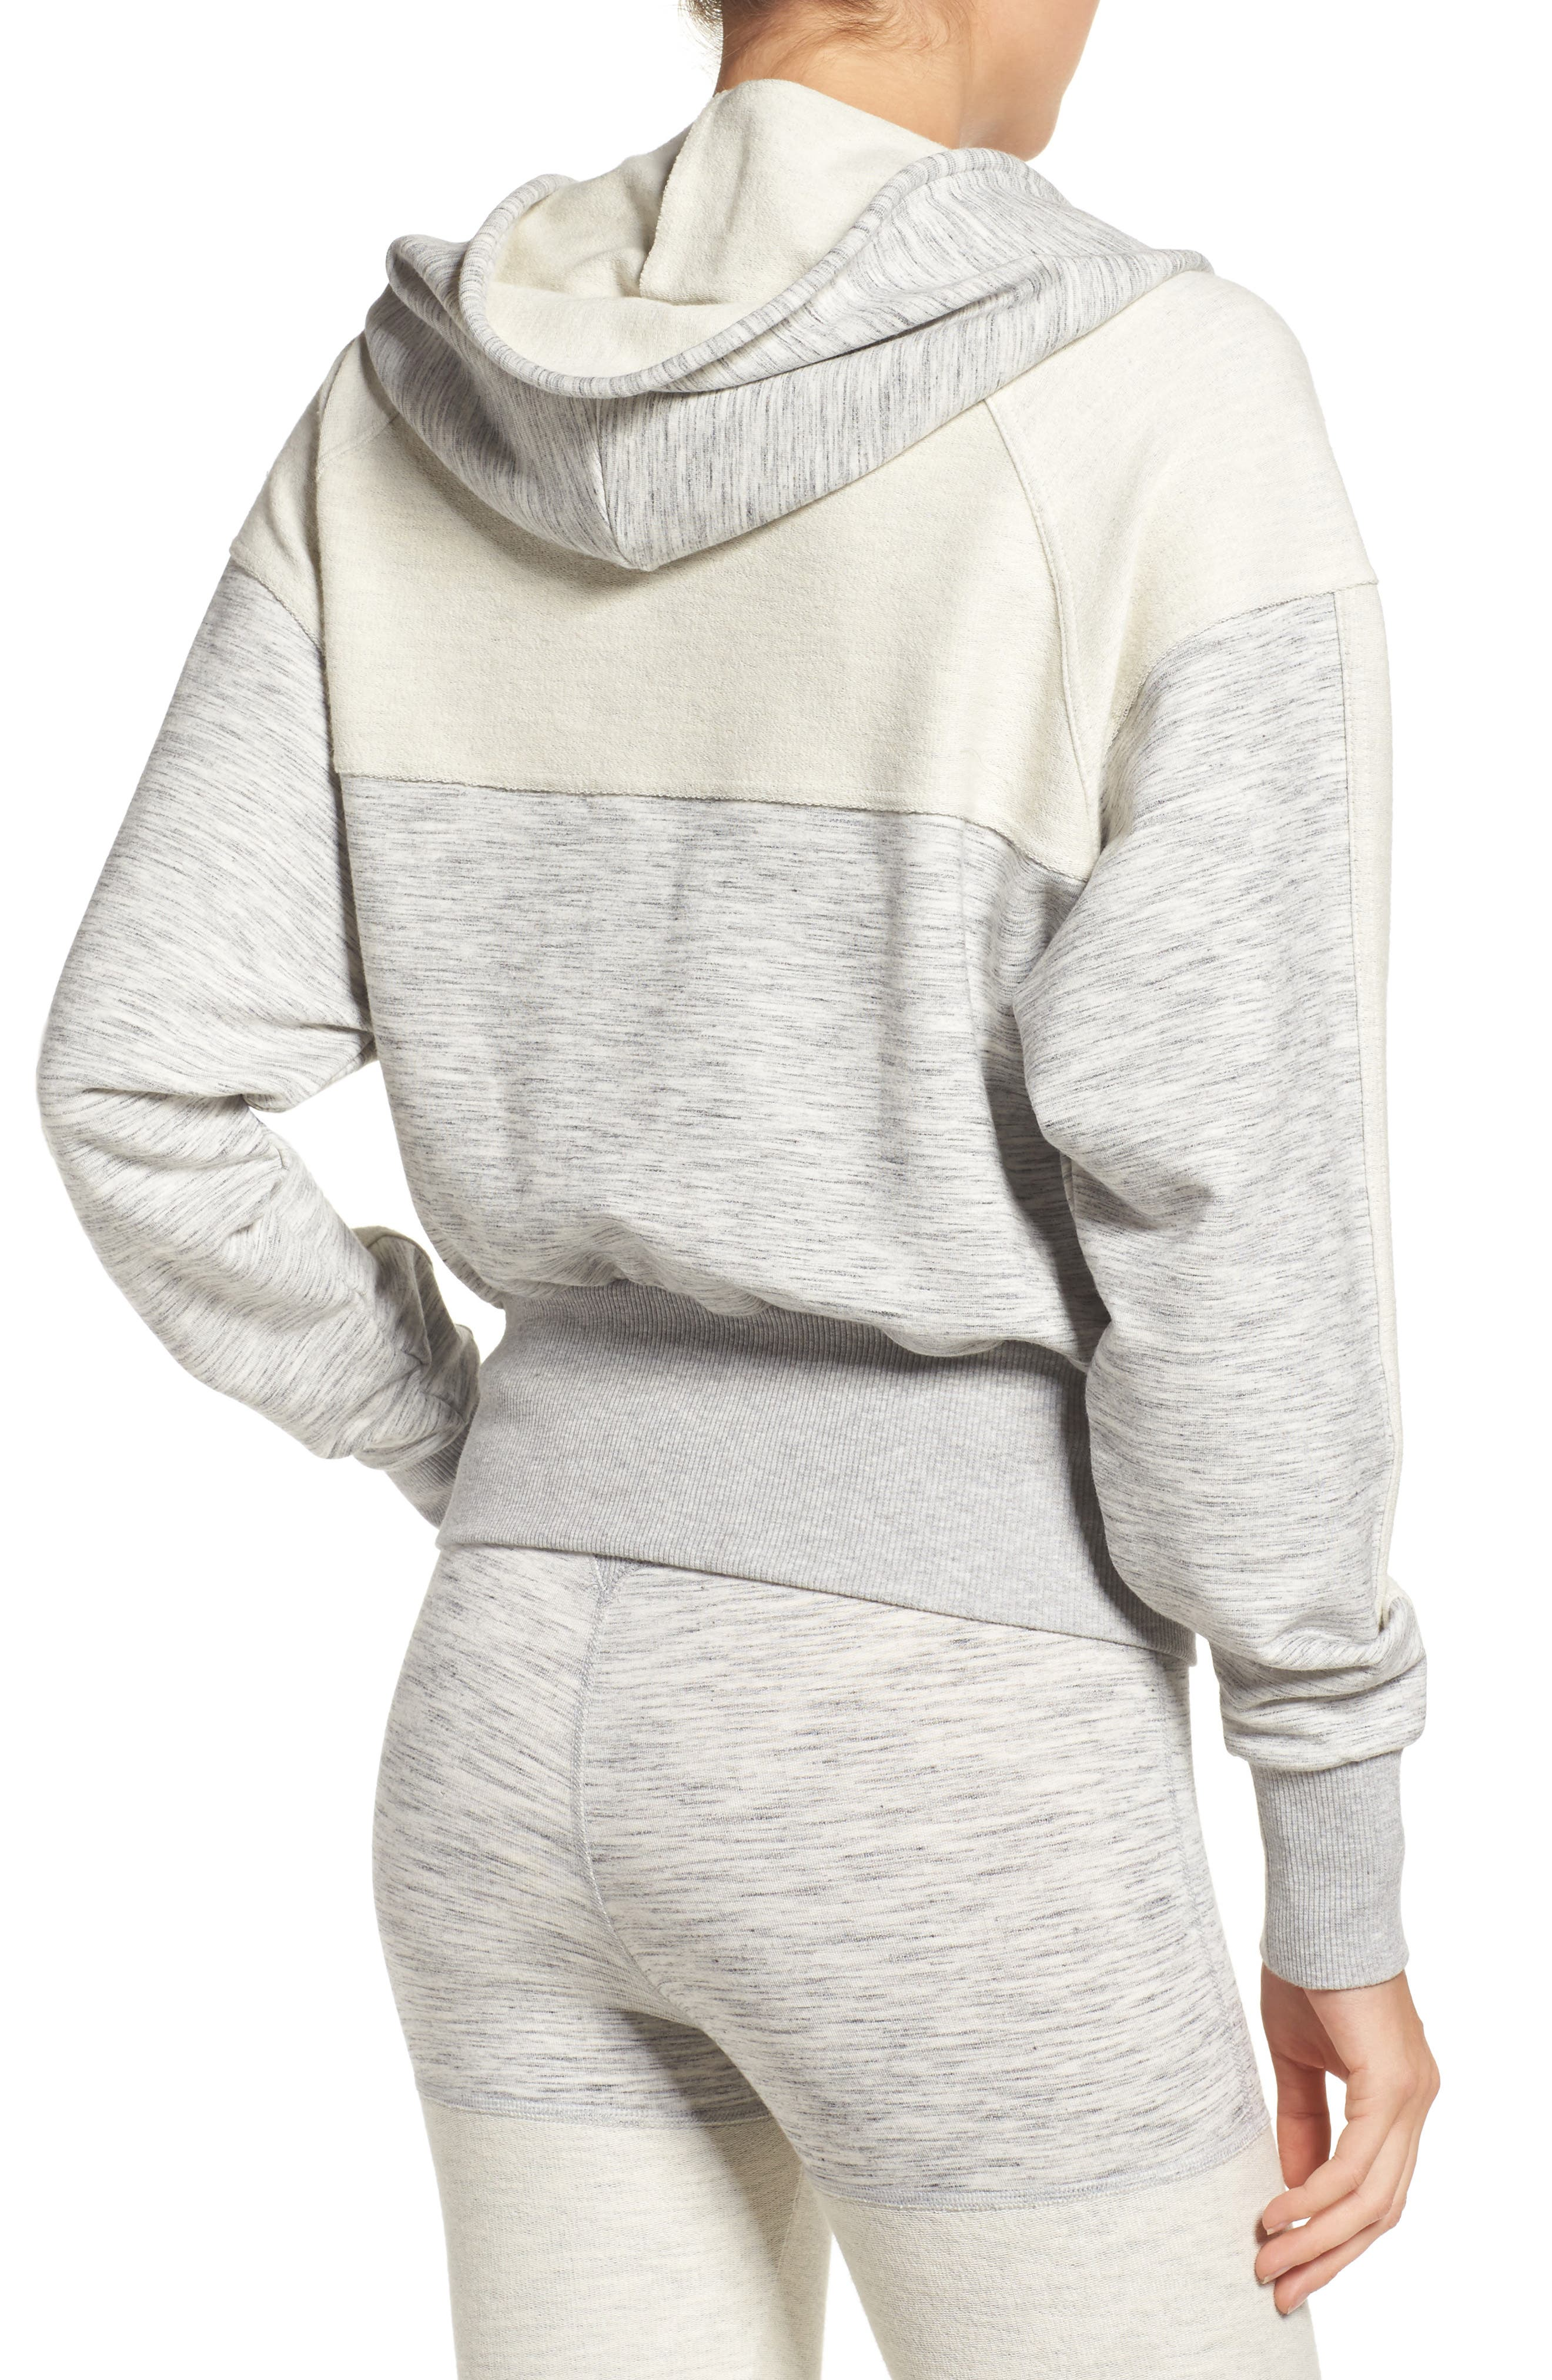 Shadowboxer Hoodie,                             Alternate thumbnail 8, color,                             GREY